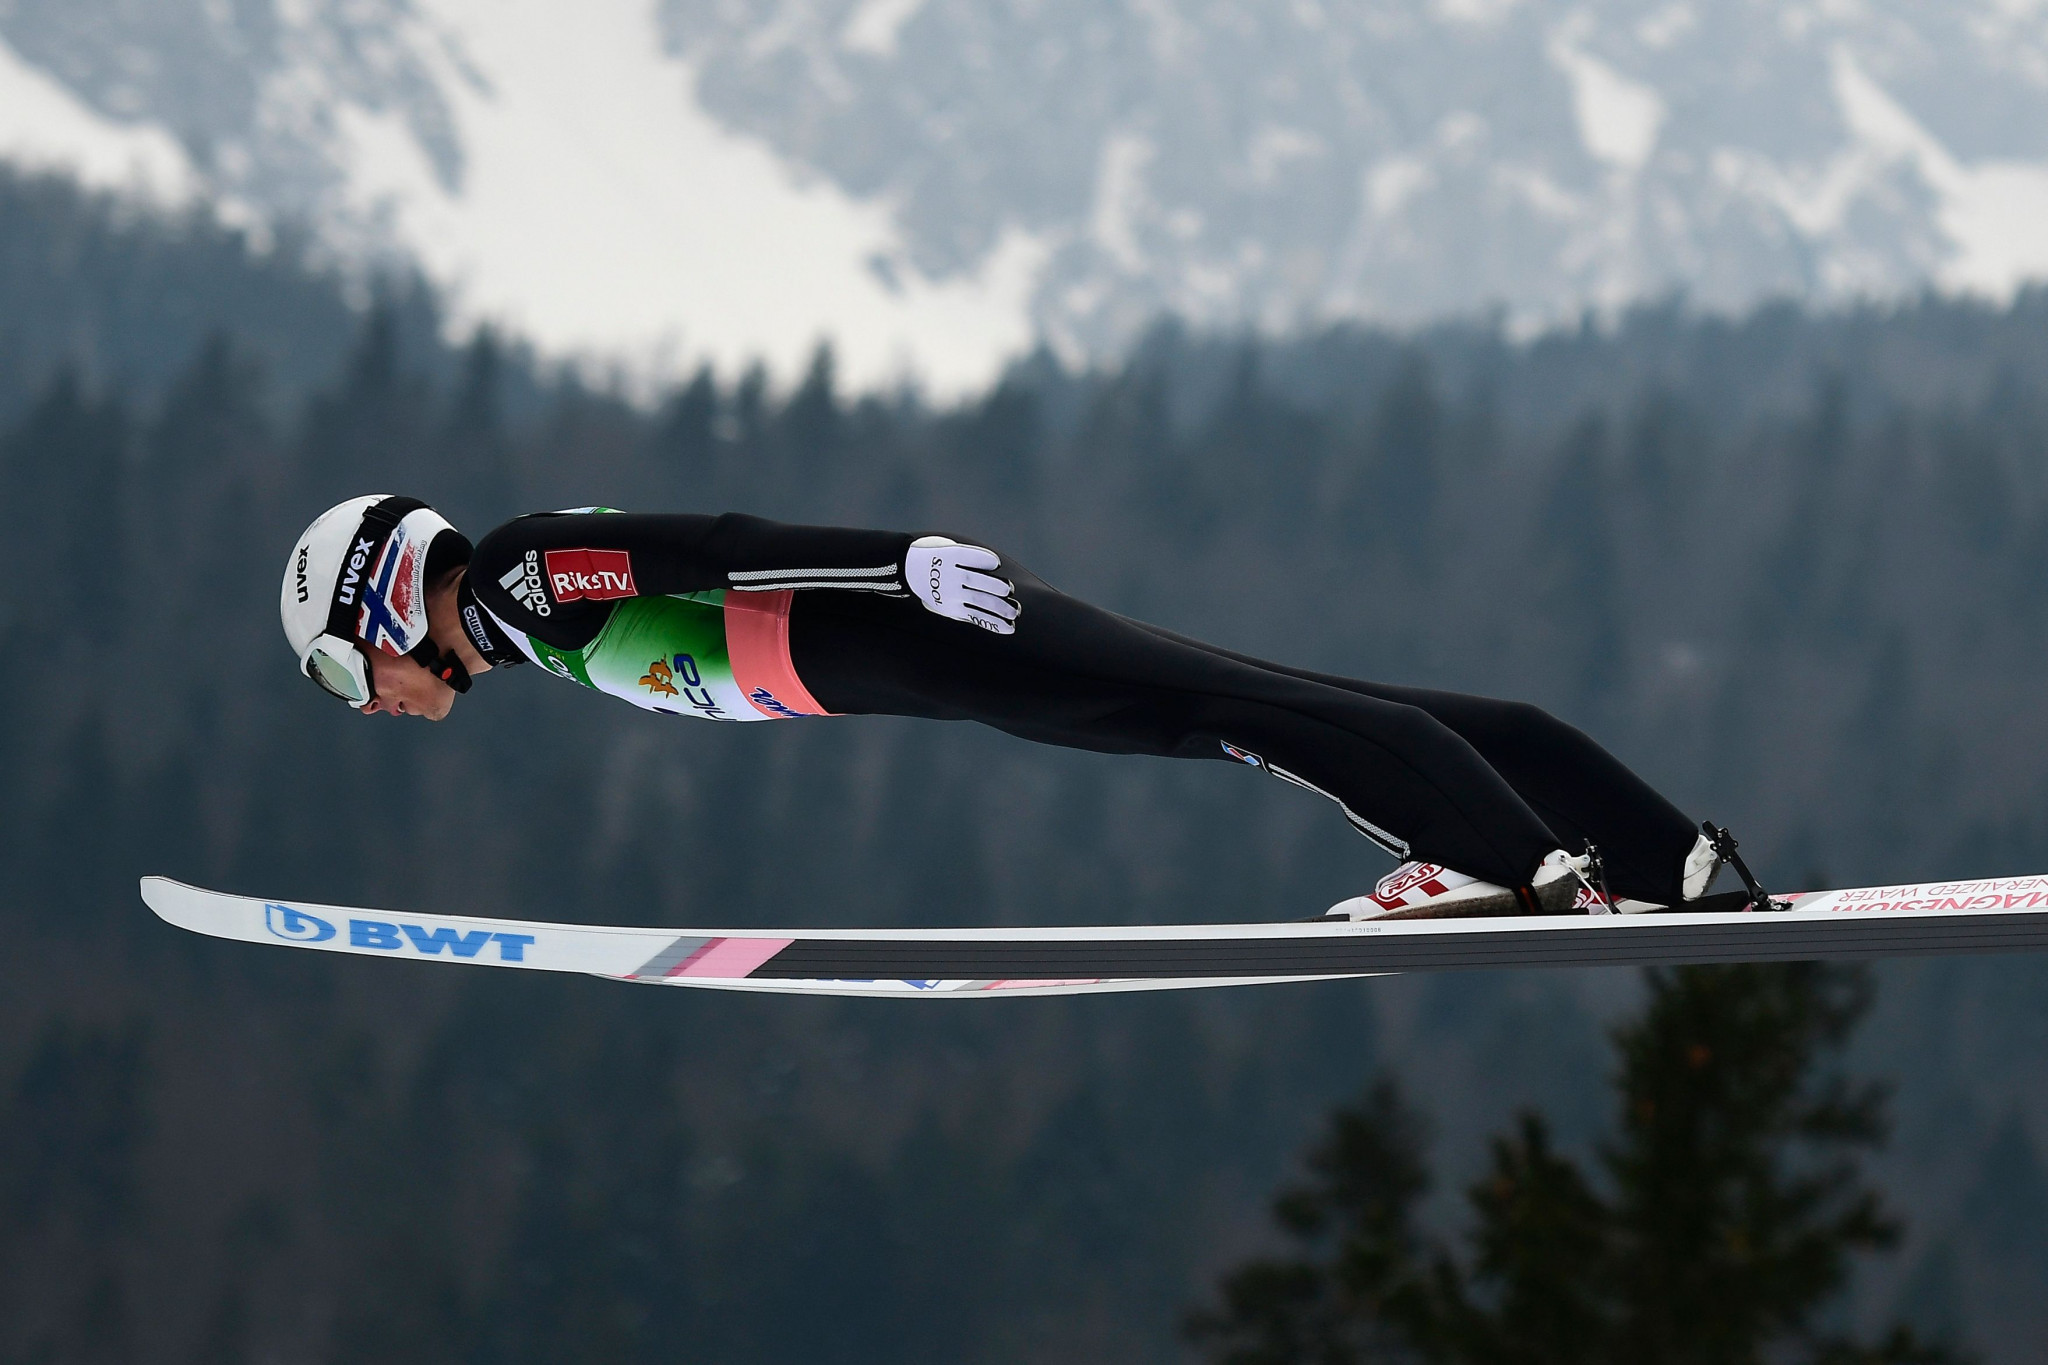 Forfang wins FIS Ski Jumping World Cup event in Nizhny Tagil